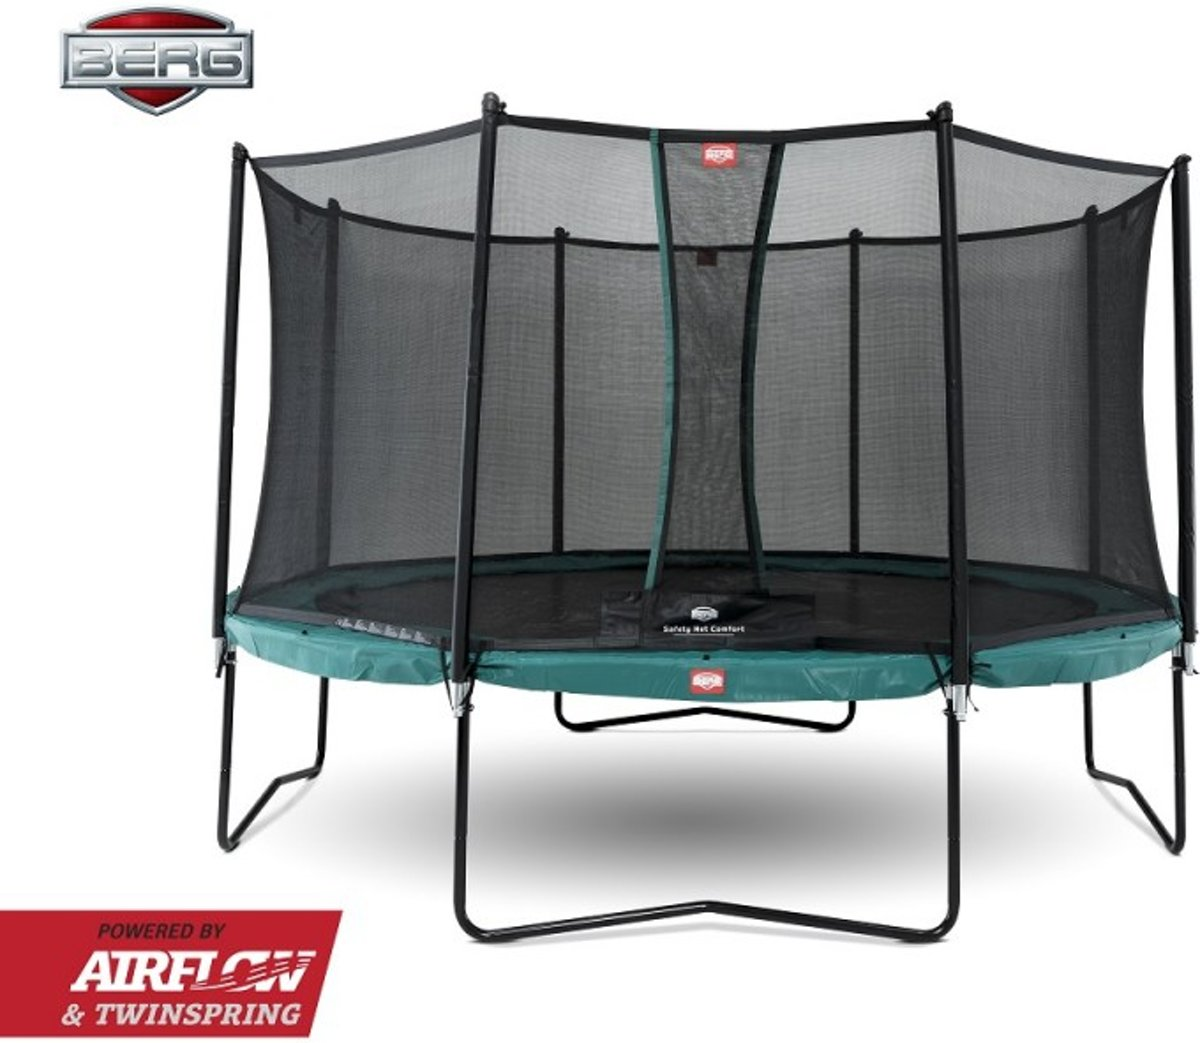 BERG Trampoline Champion 430 cm + Safetynet Comfort - Model 2018 met Airflow